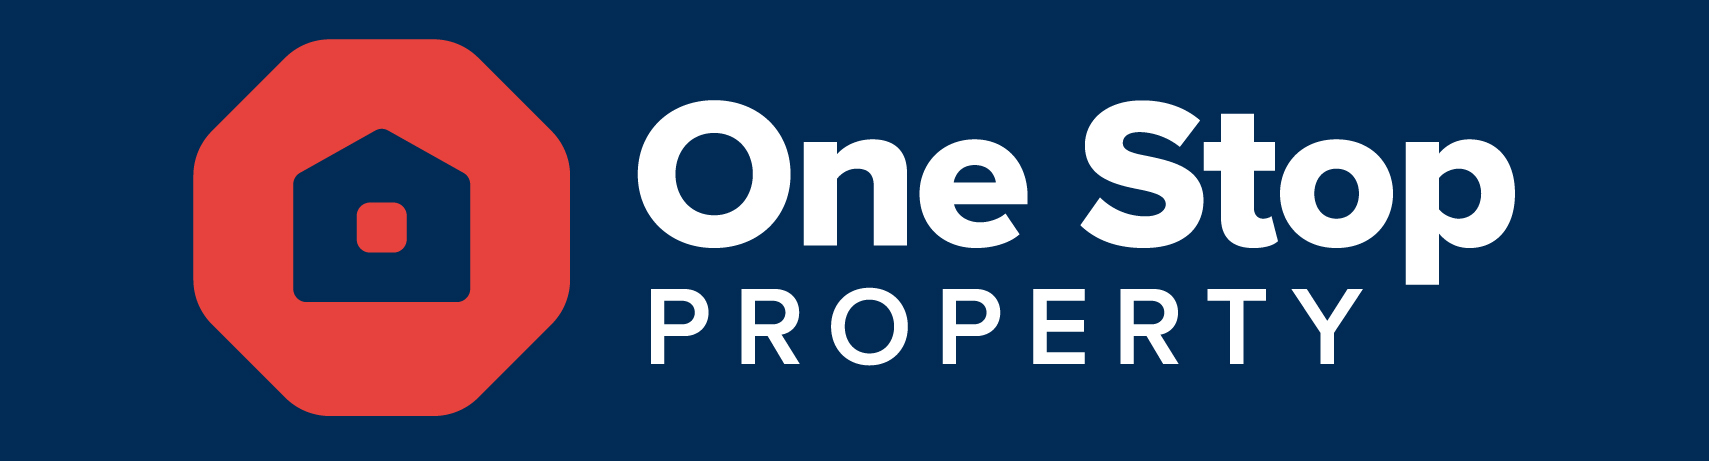 one stop property.jpg